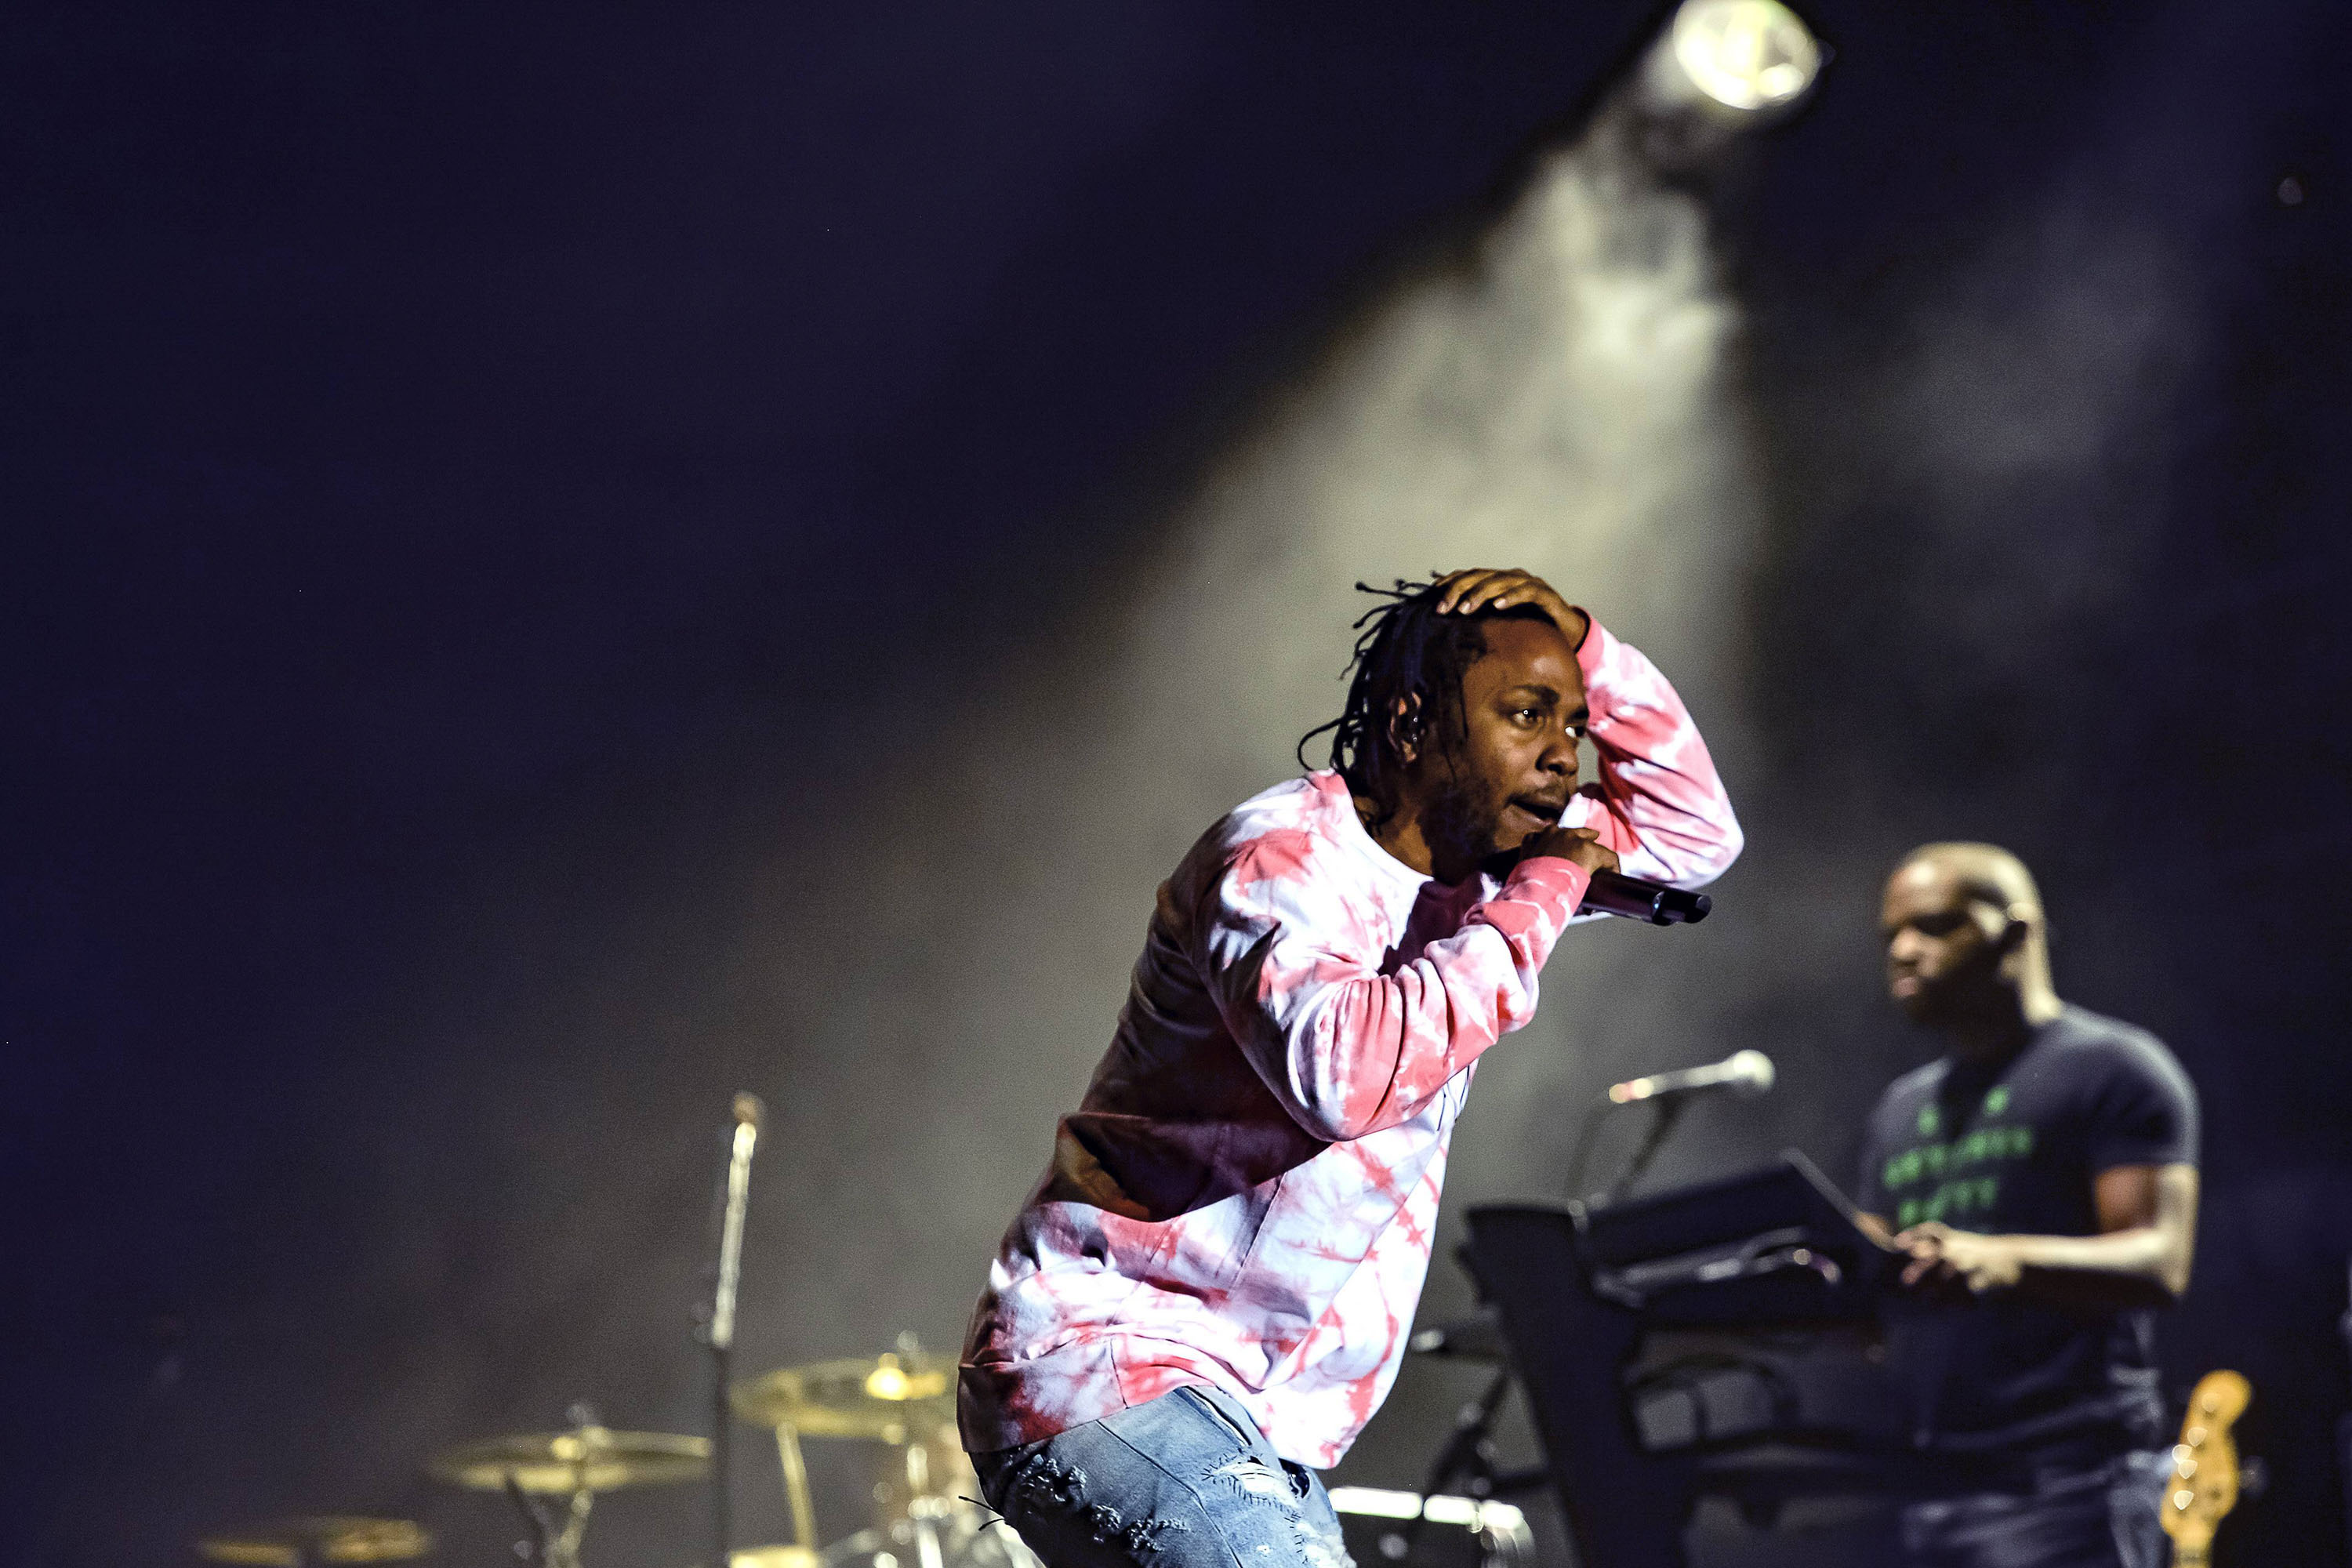 Kendrick Lamar performs at the Austin City Limits Music Festival on Oct. 8 in Austin, Texas. Columnist Saketh Vasamsetti thinks Lamar's music appeals most to college students.